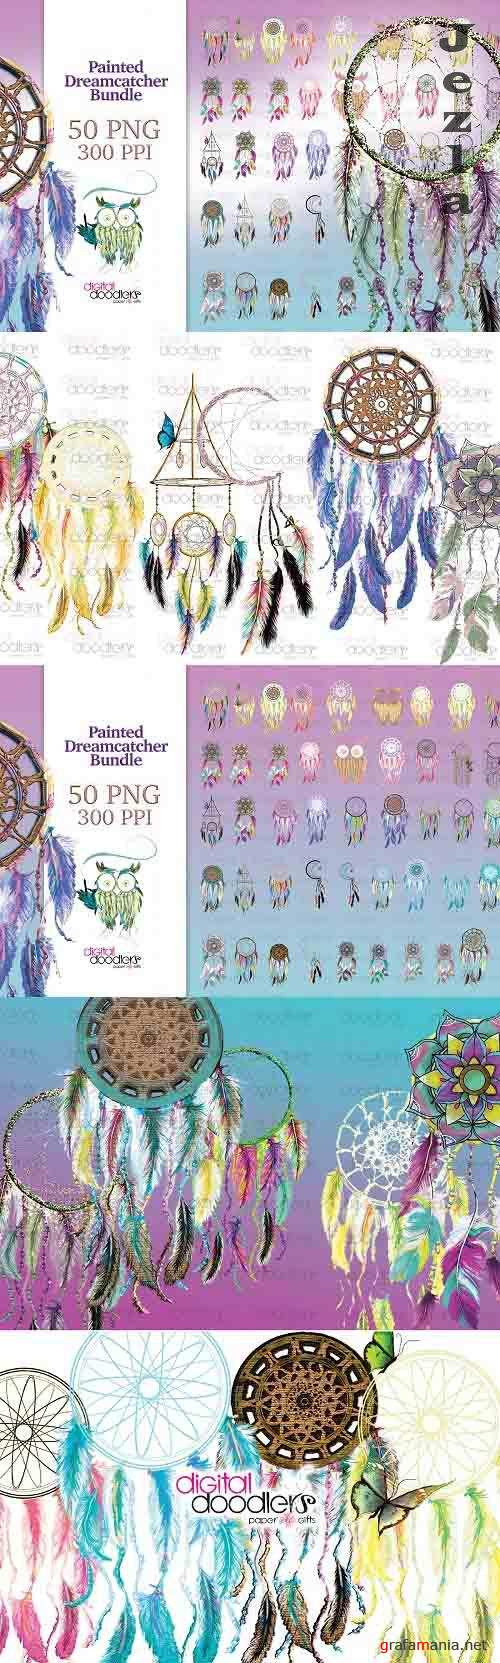 Painted Dreamcatcher Bundle - 1359986